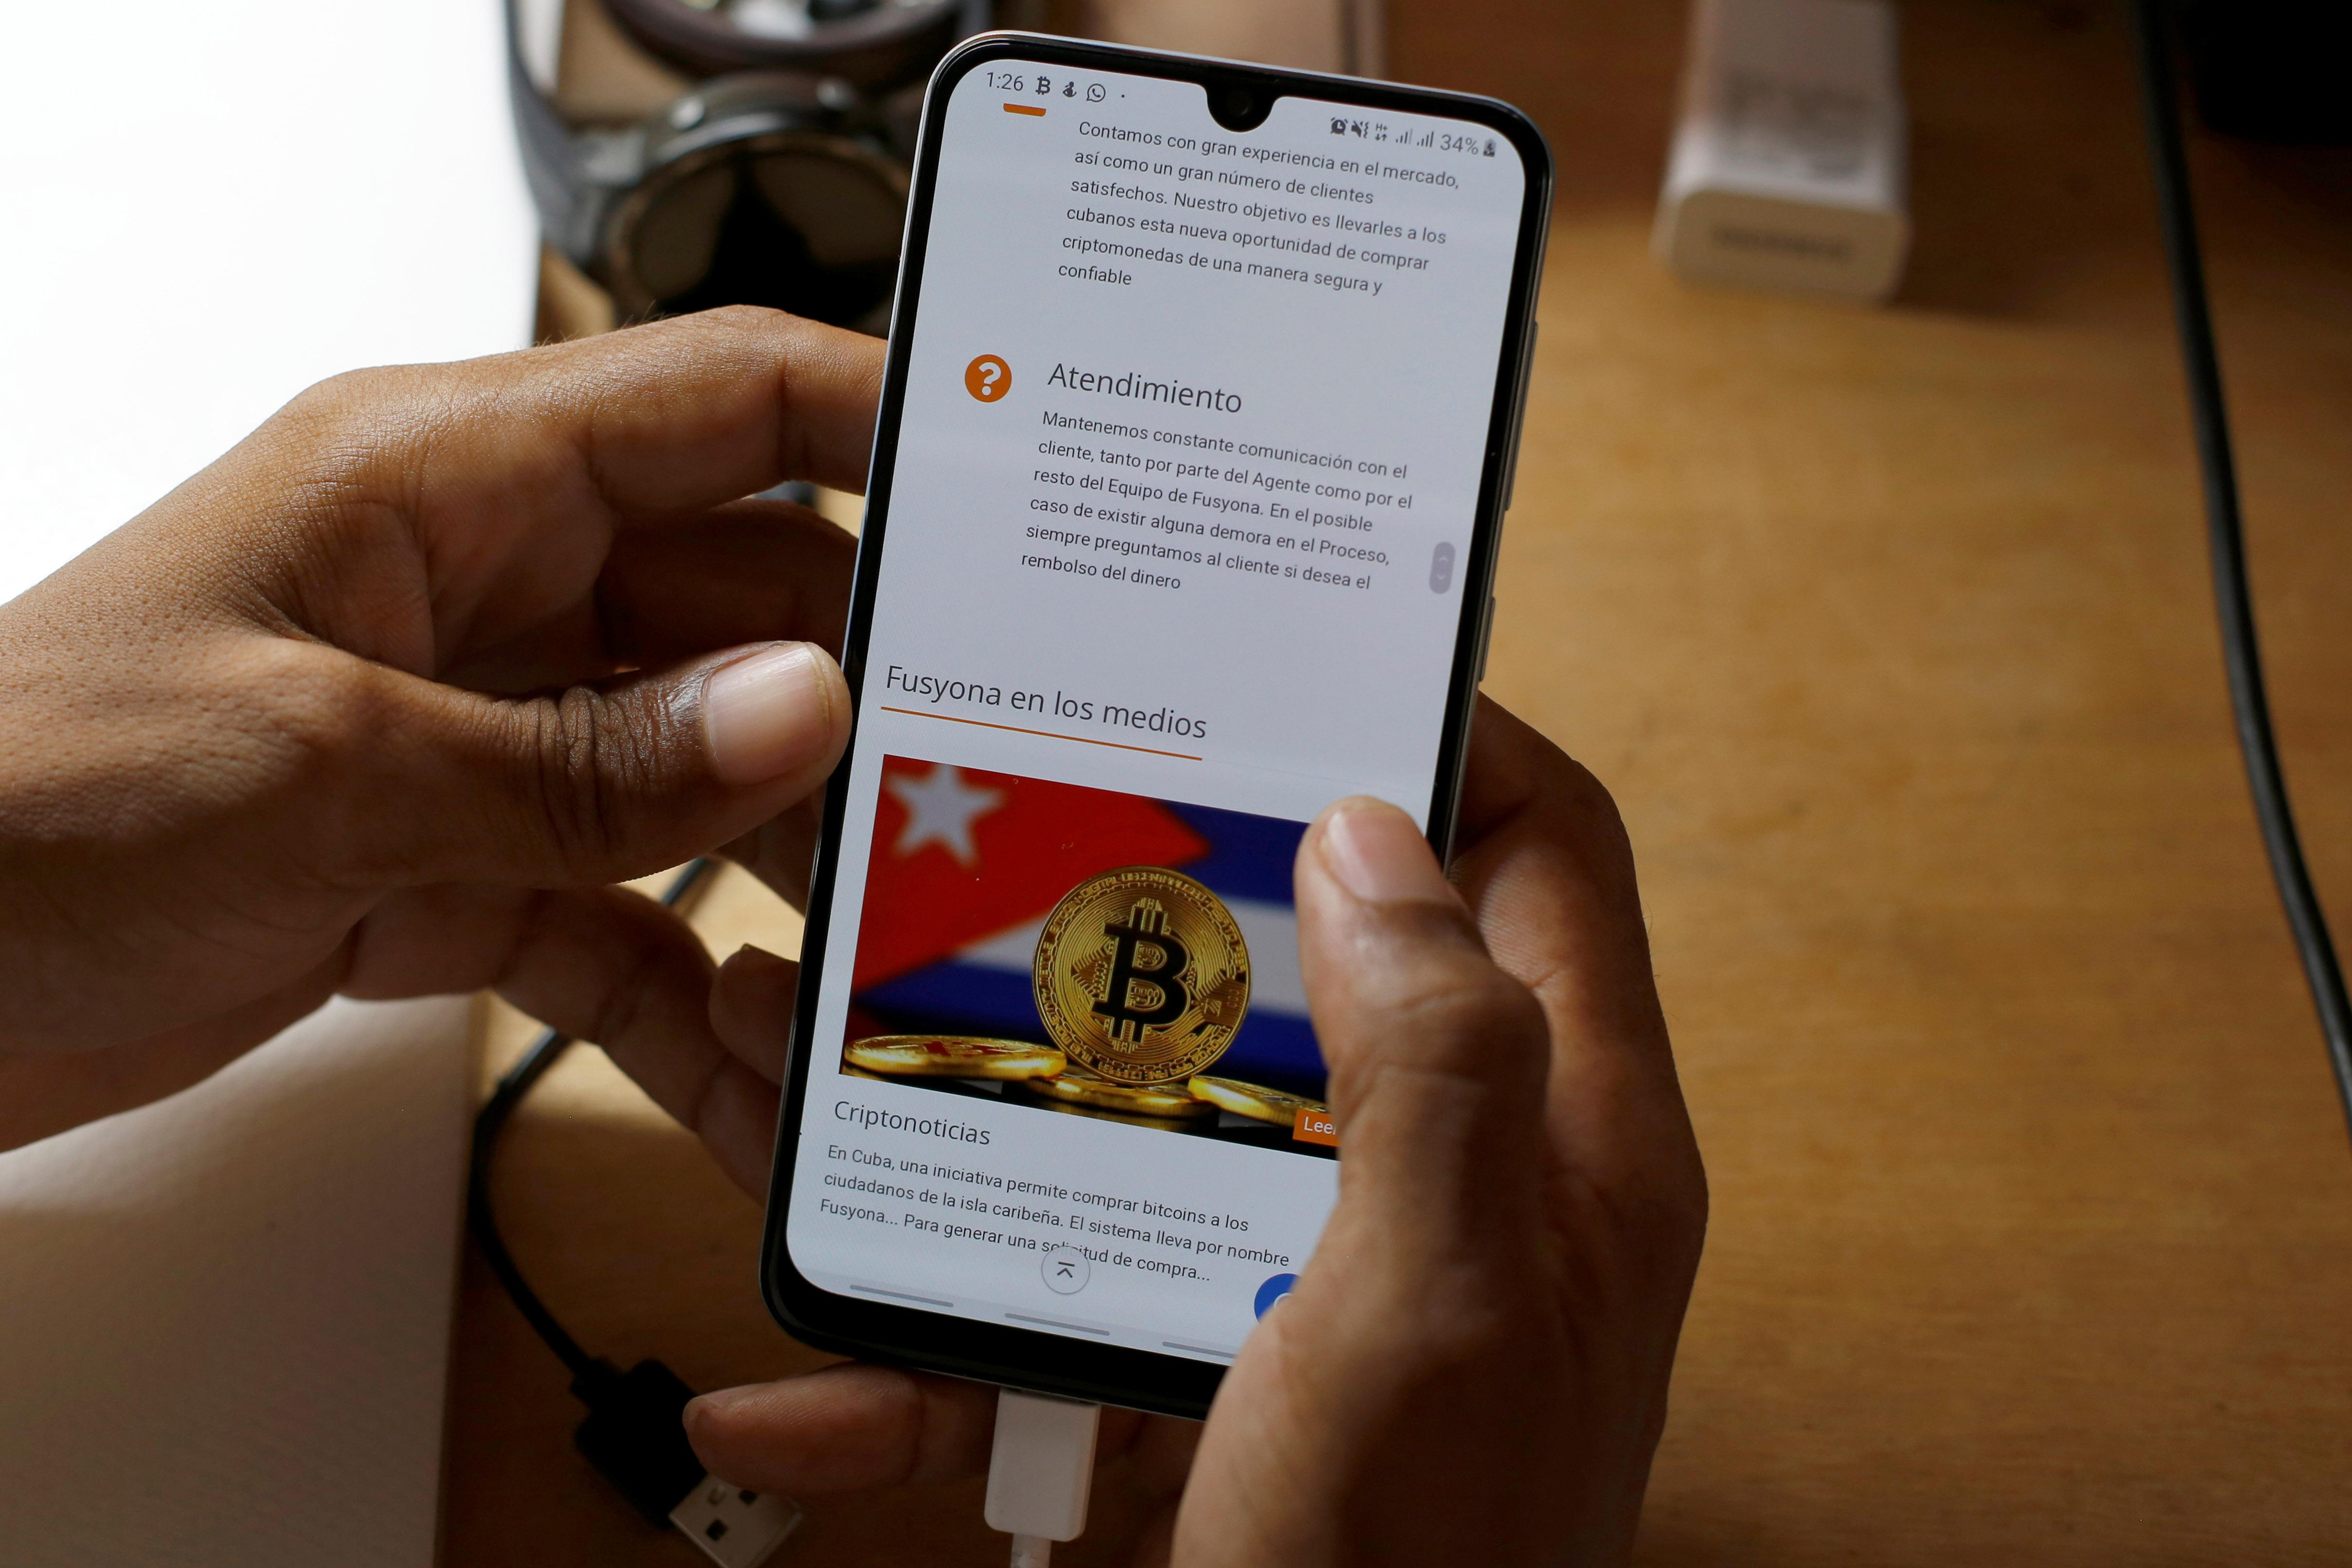 Skirting U.S. sanctions, Cubans flock to cryptocurrency to shop online, send funds